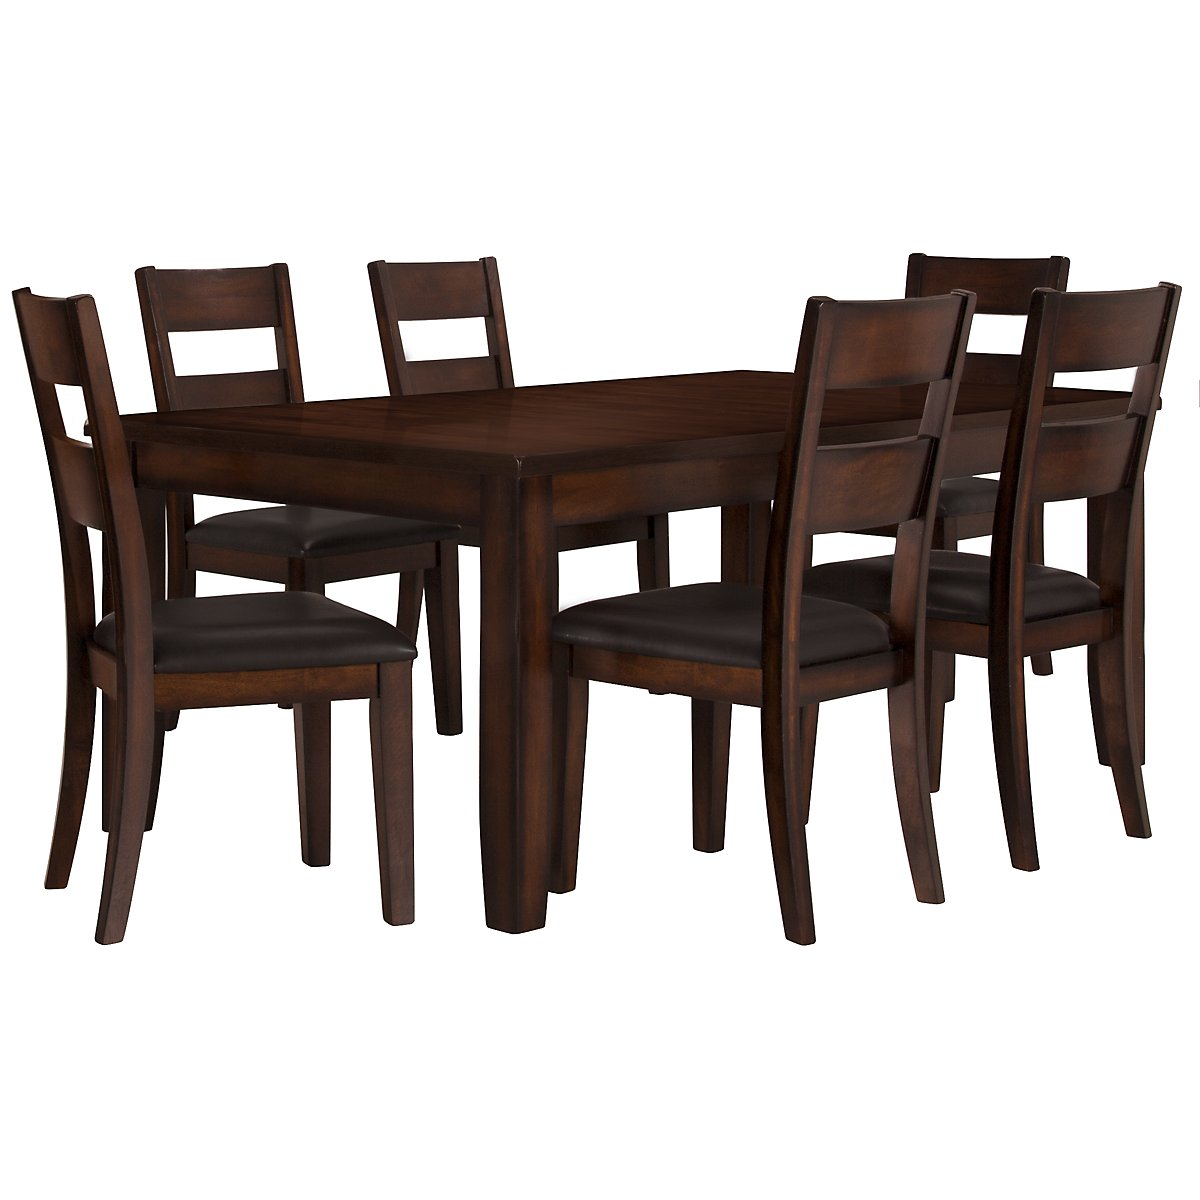 Mango2 Dark Tone Rectangular Table & 4 Chairs